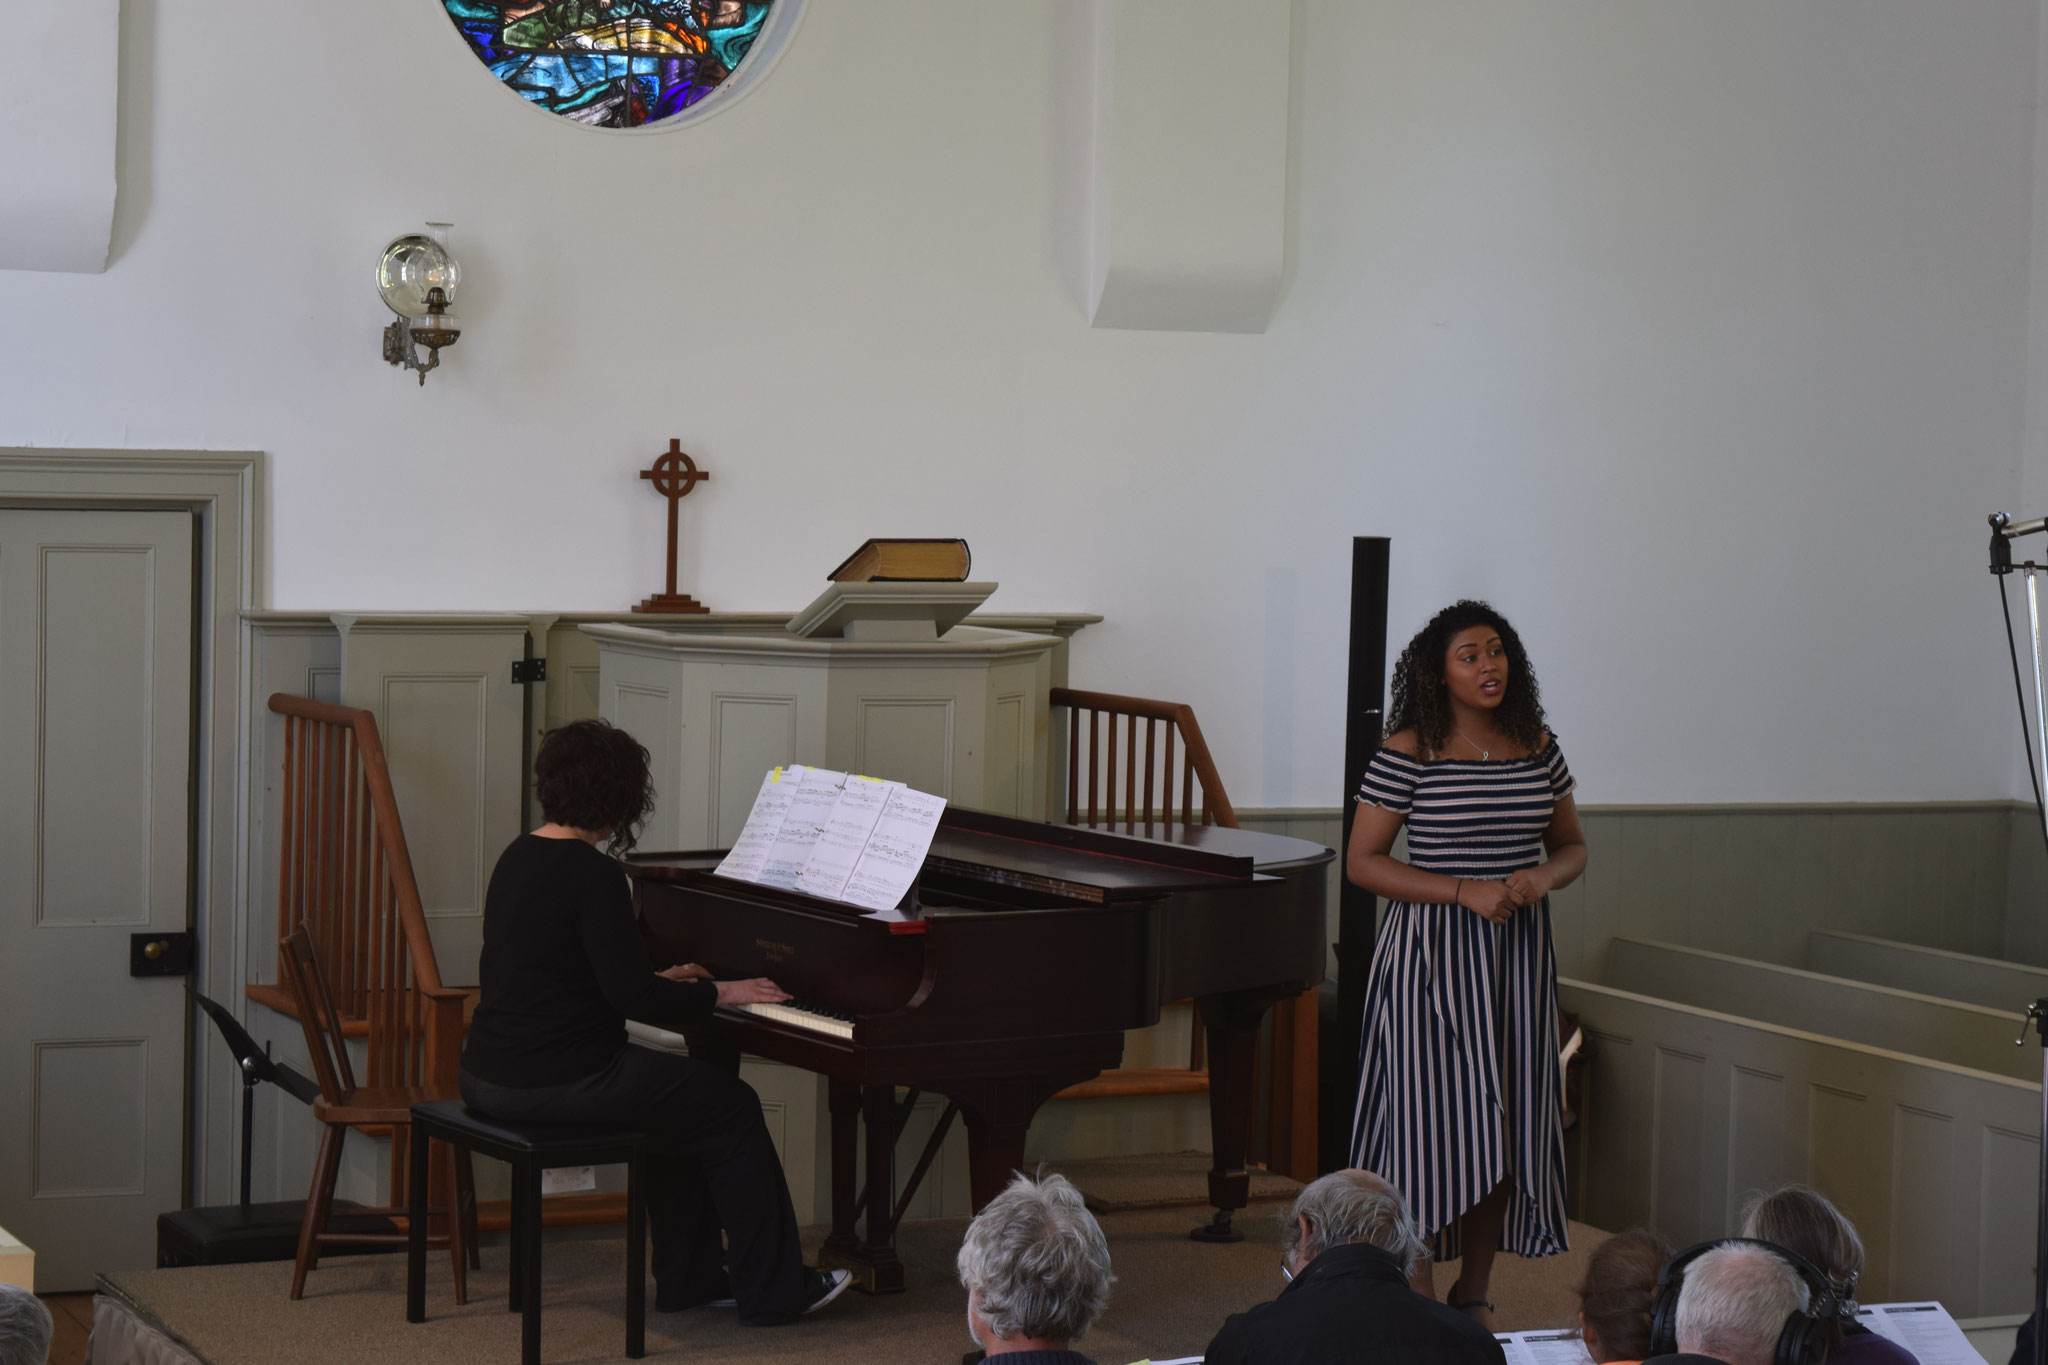 Vocalist Cydney Morris in performance accompanied by Christina Edwards.